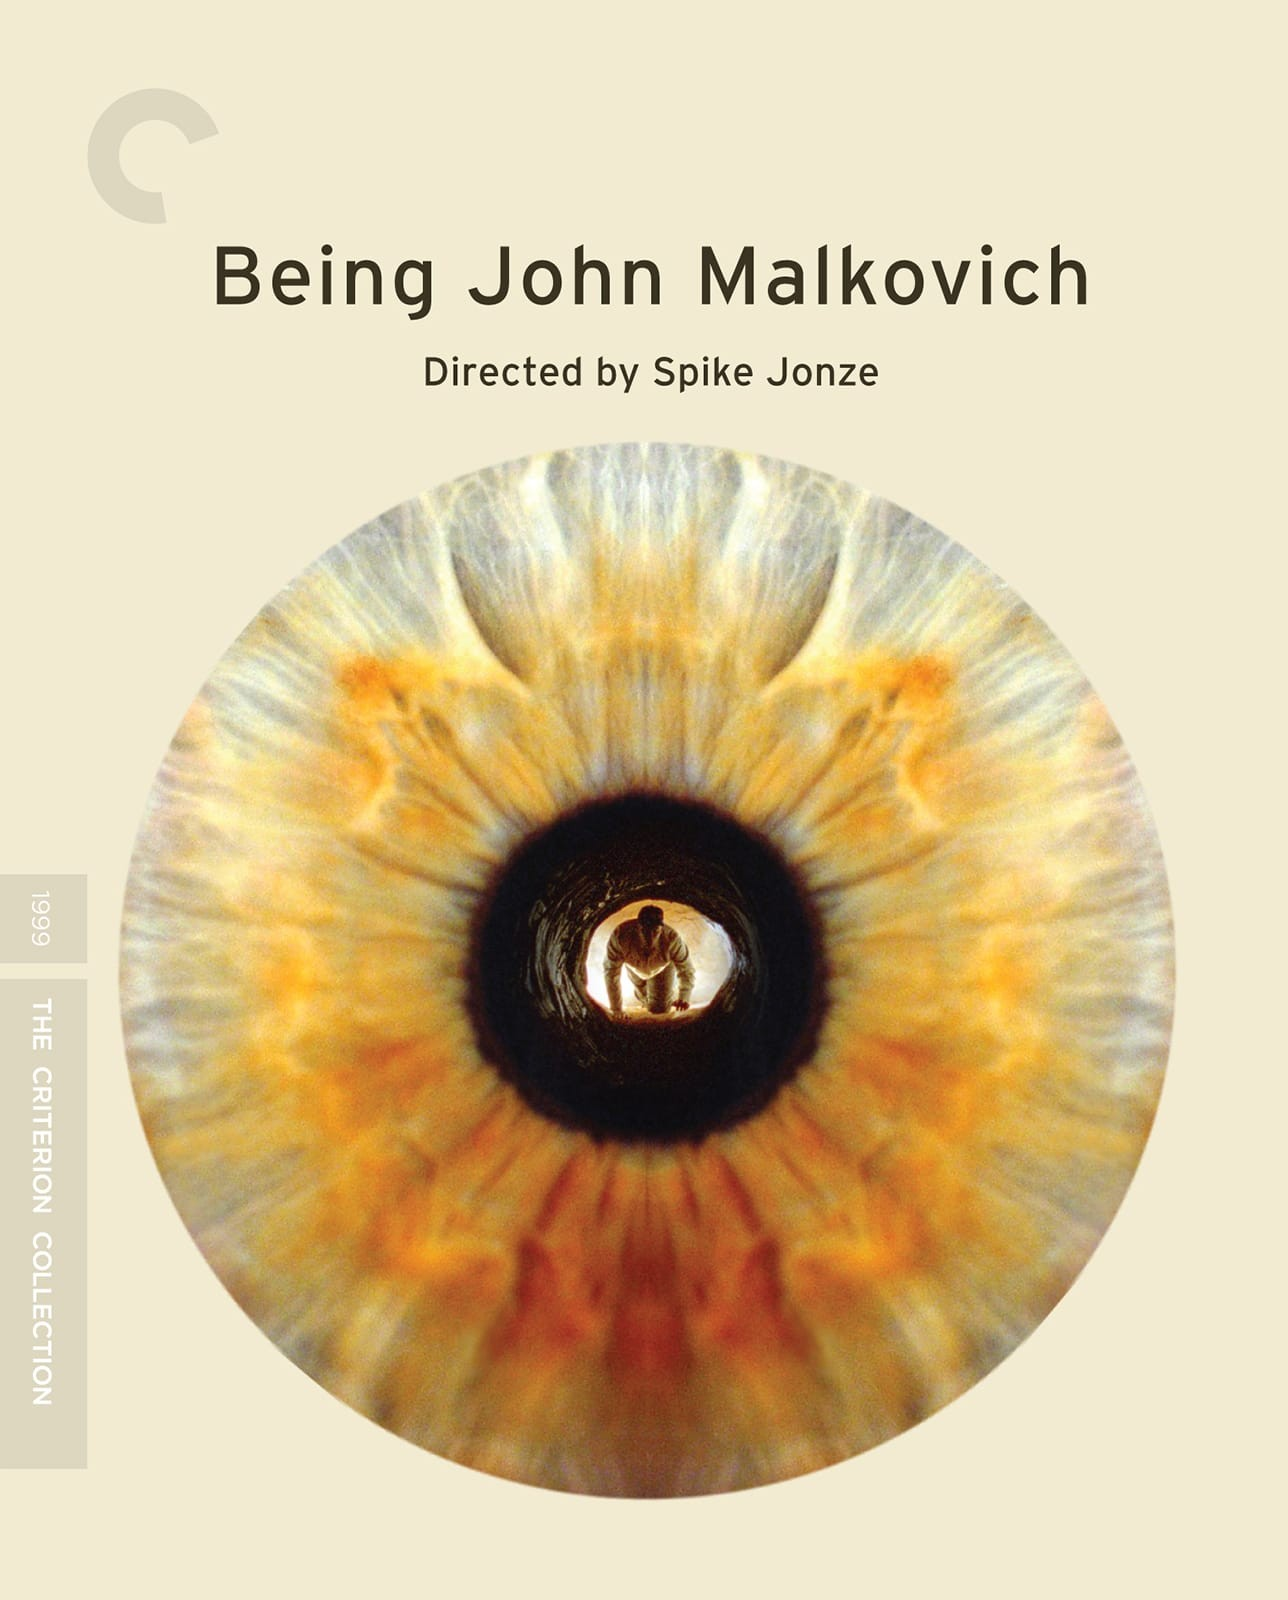 Being John Malkovich (1999) | The Criterion Collection